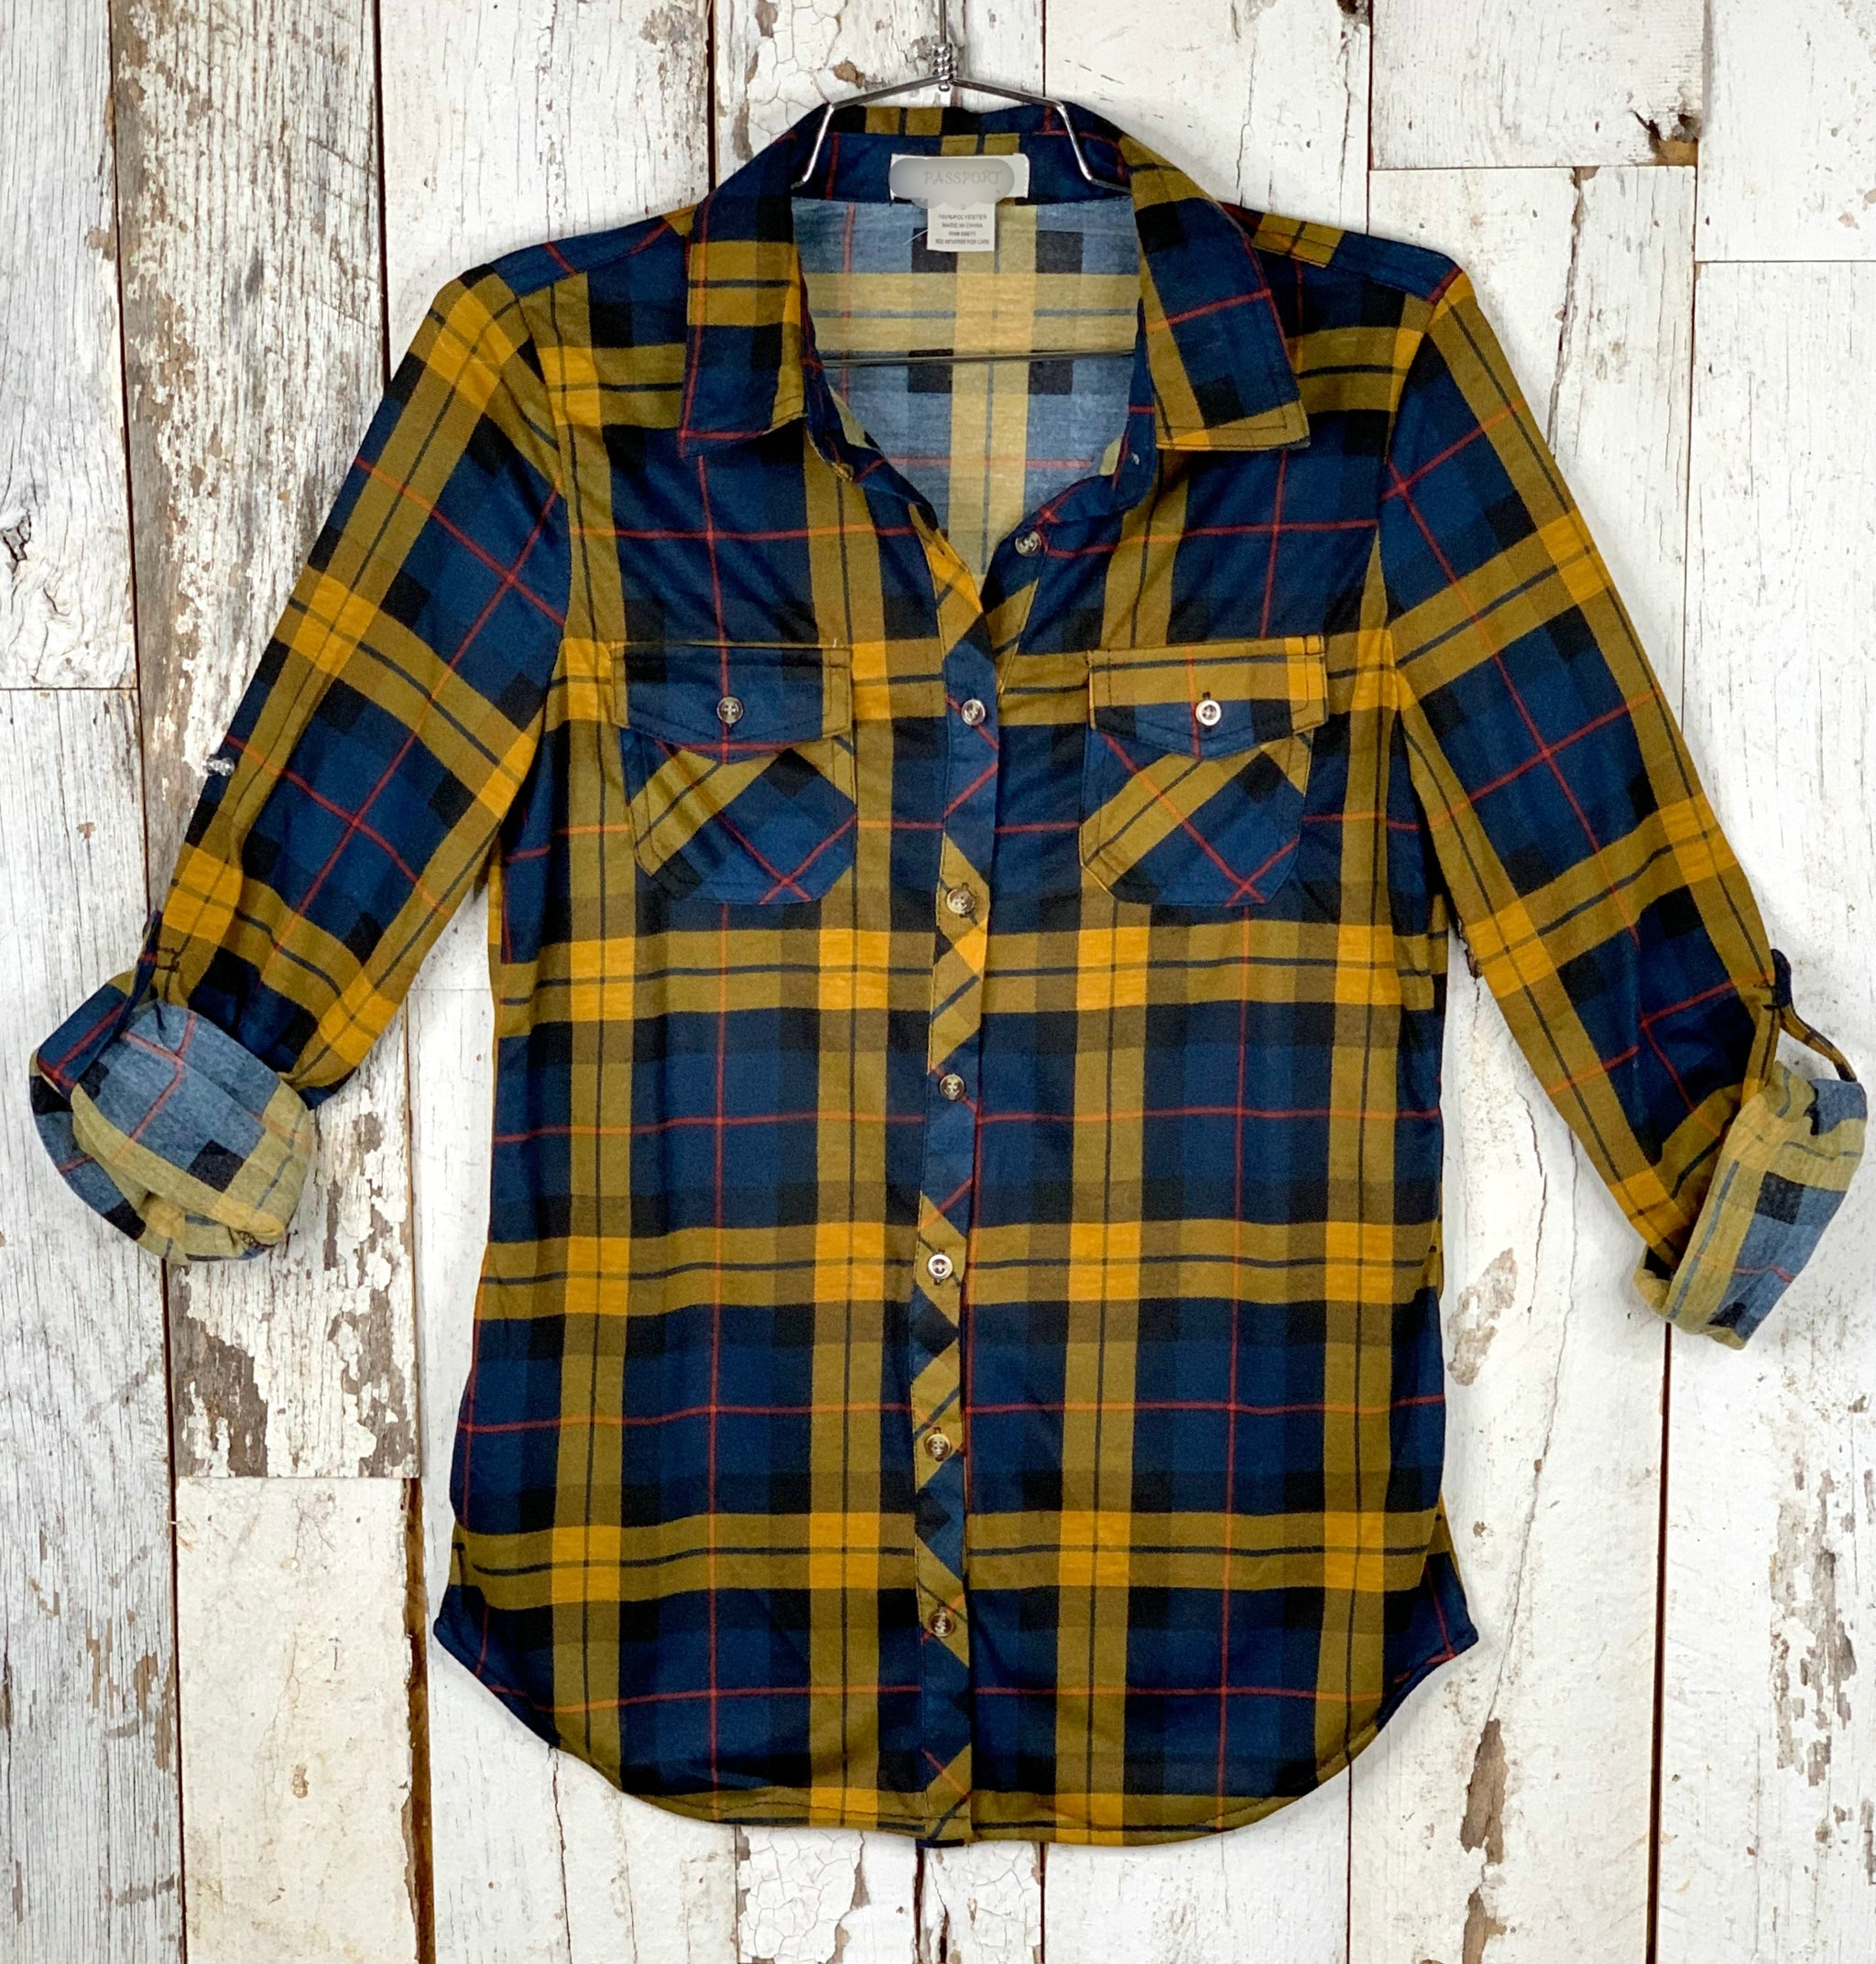 Penny Plaid Flannel Top - Navy/Mustard